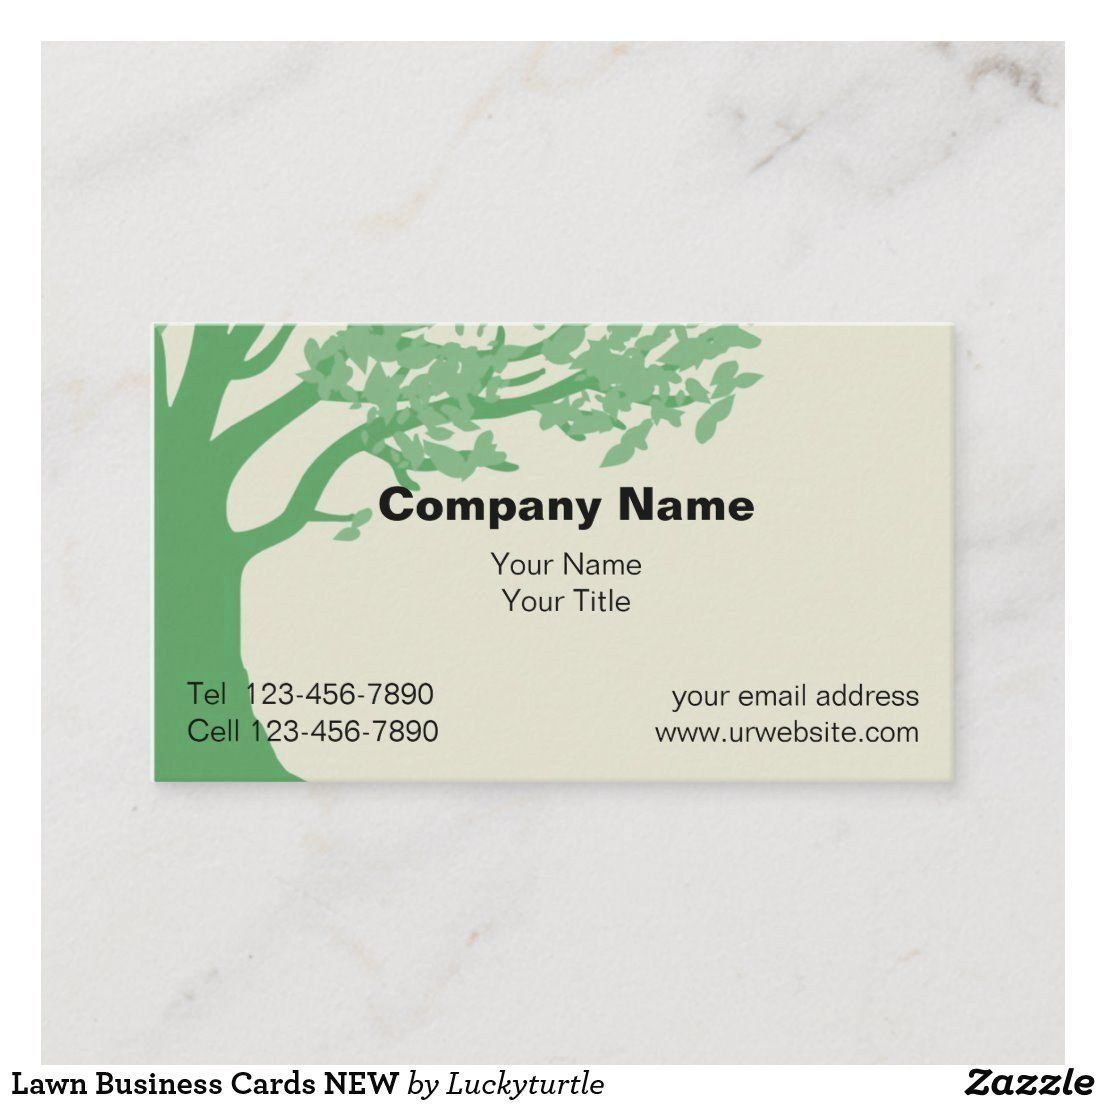 Lawn Business Cards New Zazzle Com 1000 Modern 1000 Lawn Care Business Cards Landscaping Business Cards Lawn Care Business